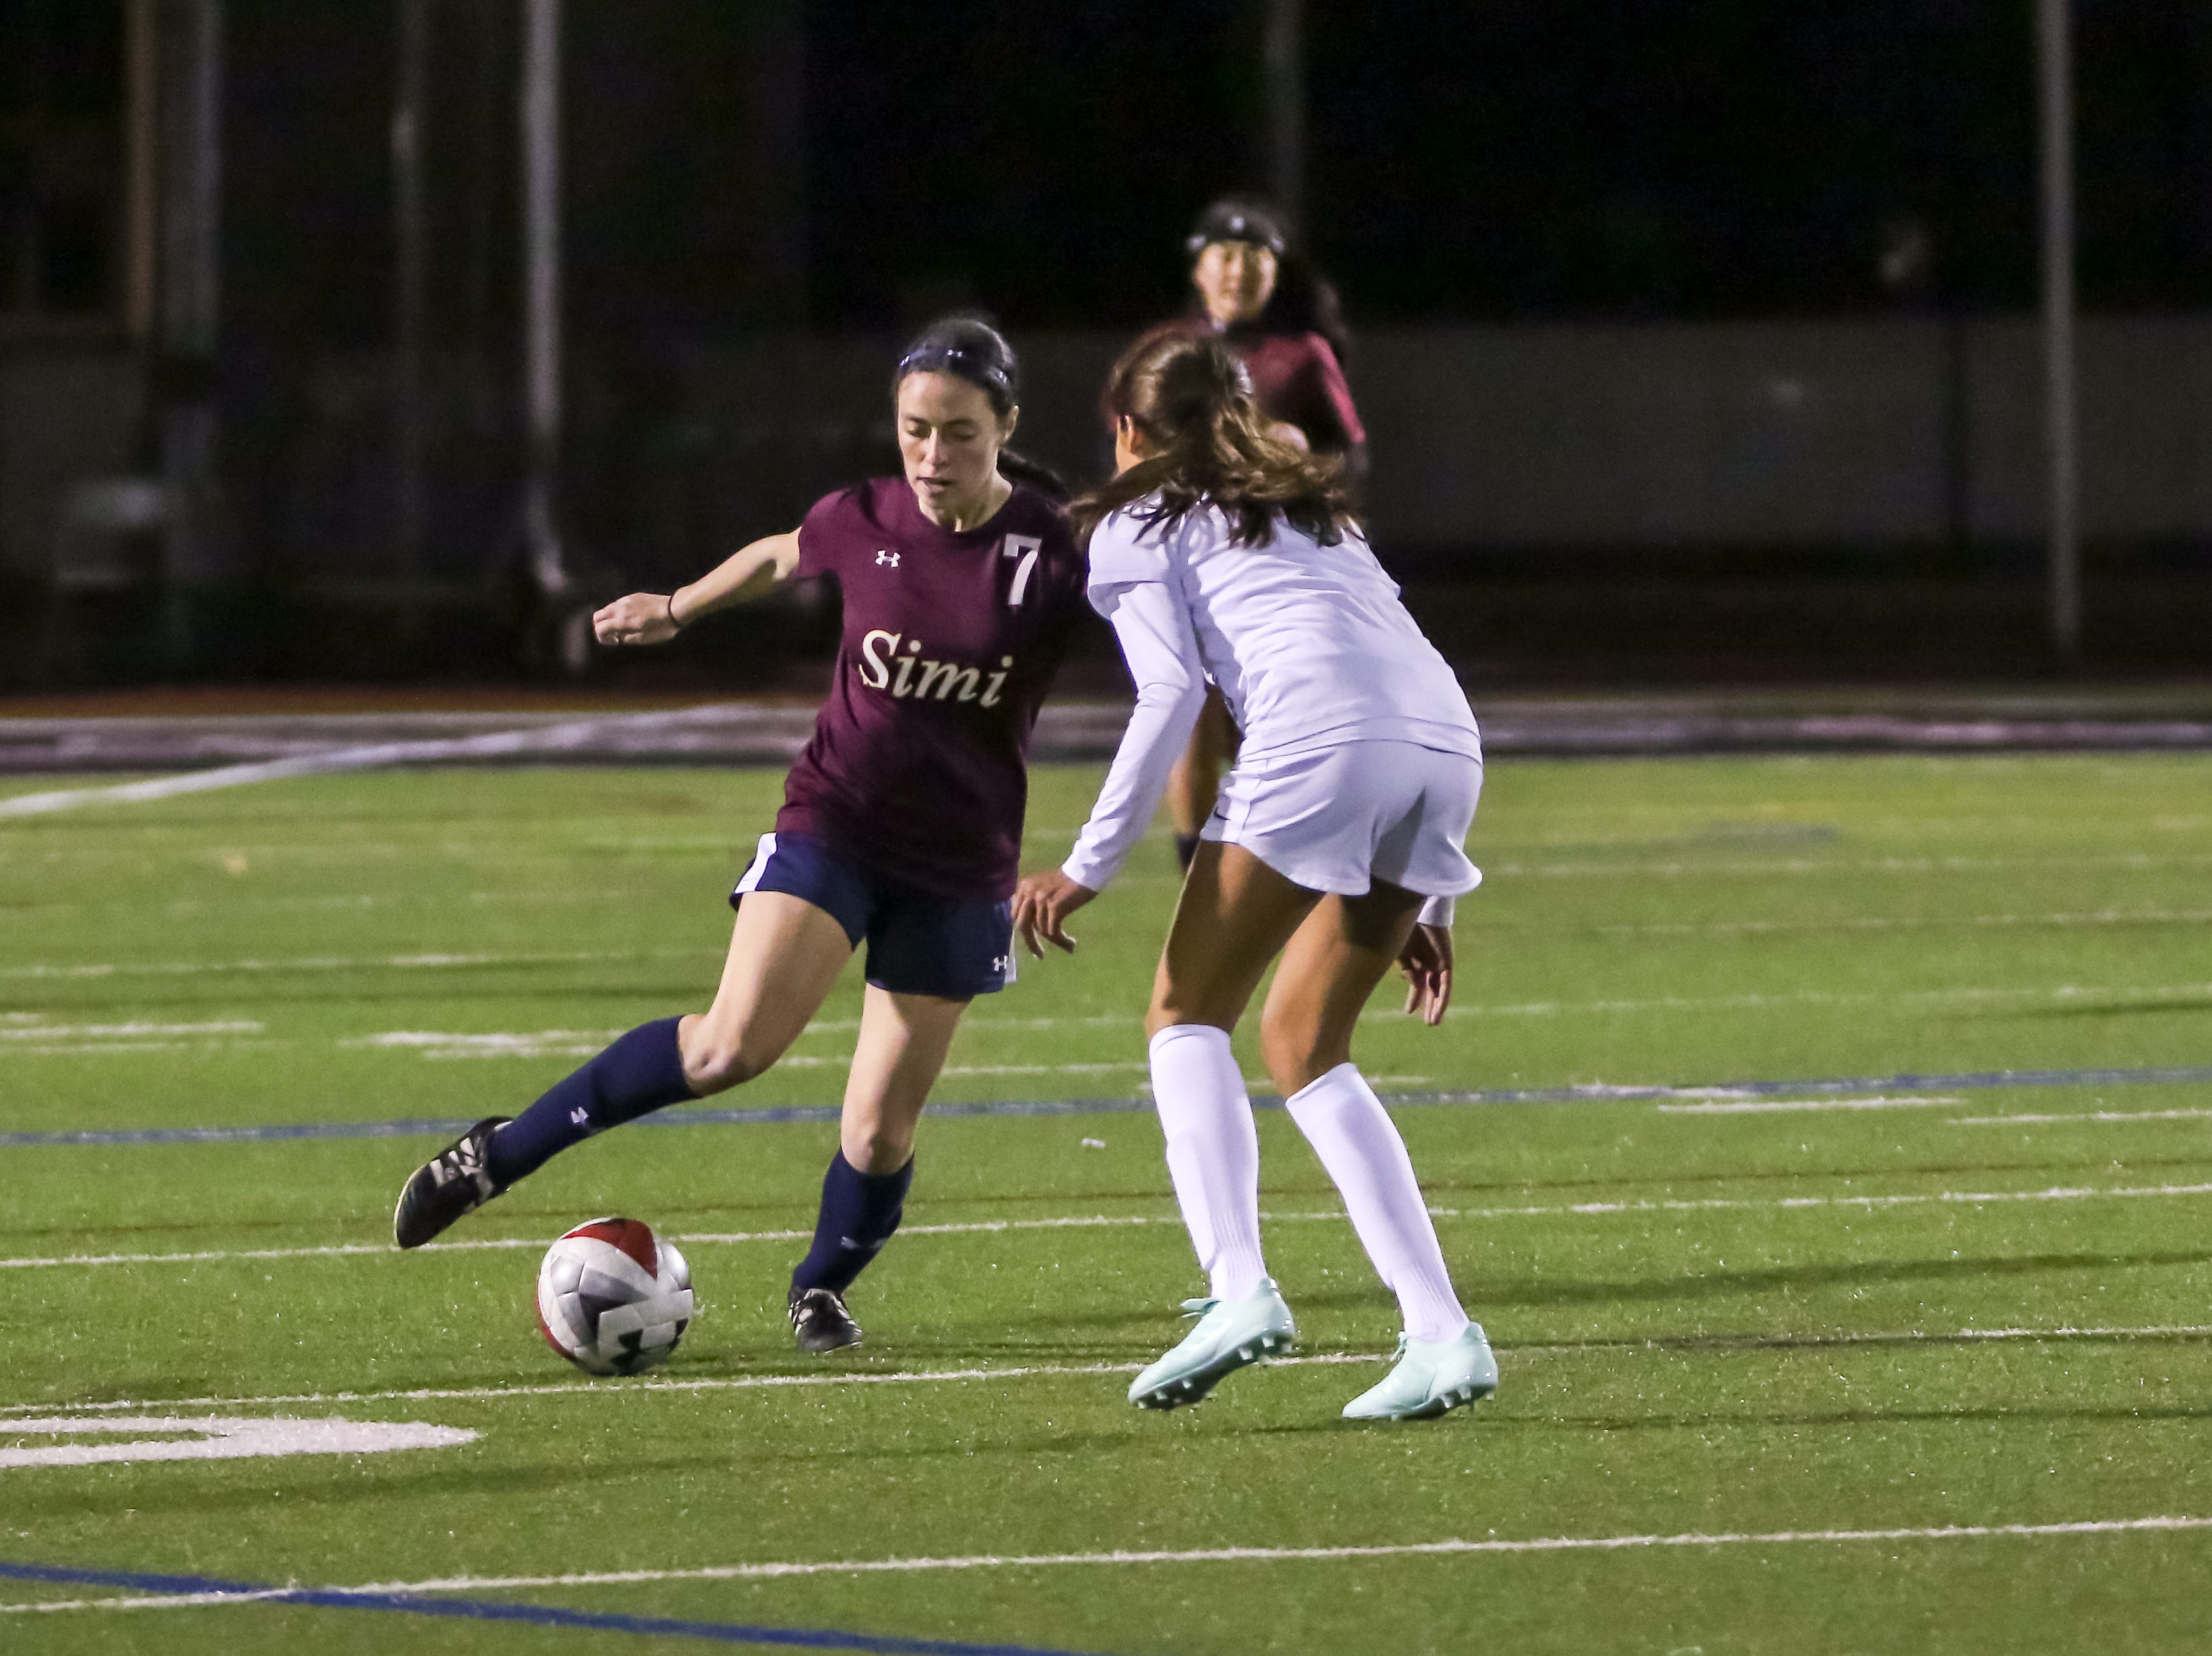 Simi Valley's Amanda Crawford takes on a defender during Friday night's Ventura County versus Los Angeles County Senior Girls Soccer All-Star game at Oaks Christian's Thorson Stadium. Ventura County won, 1-0.